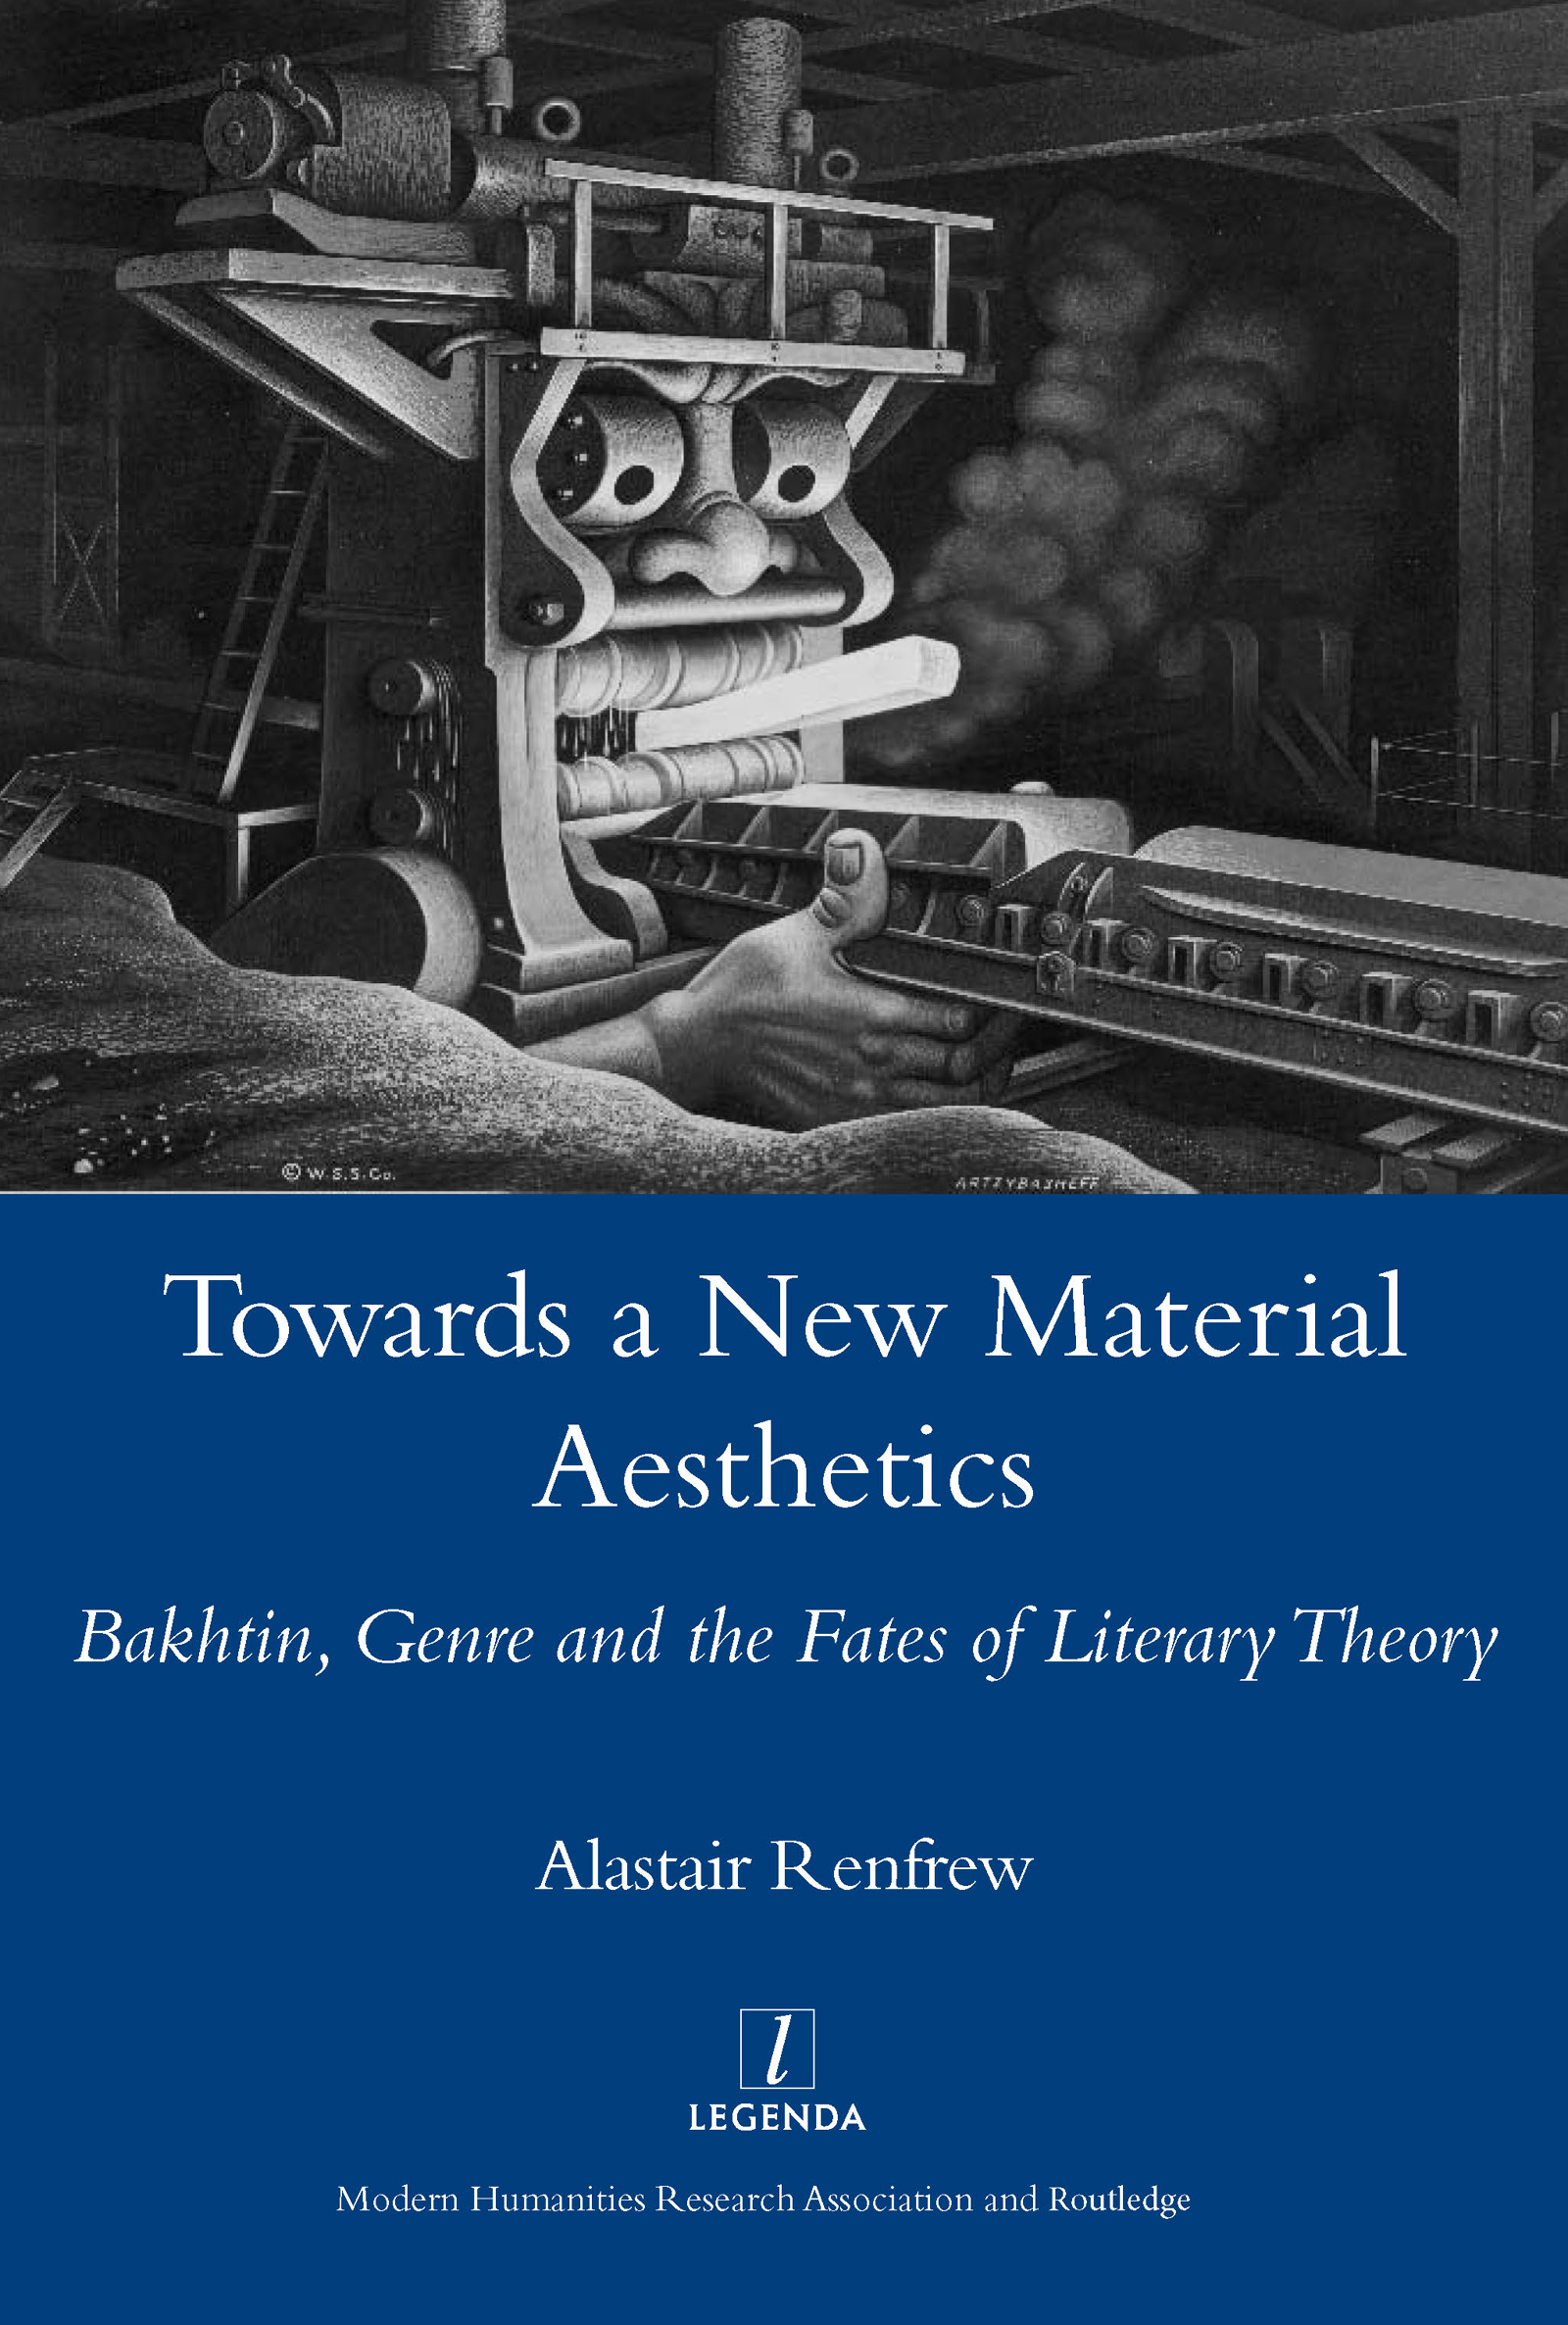 Towards a New Material Aesthetics